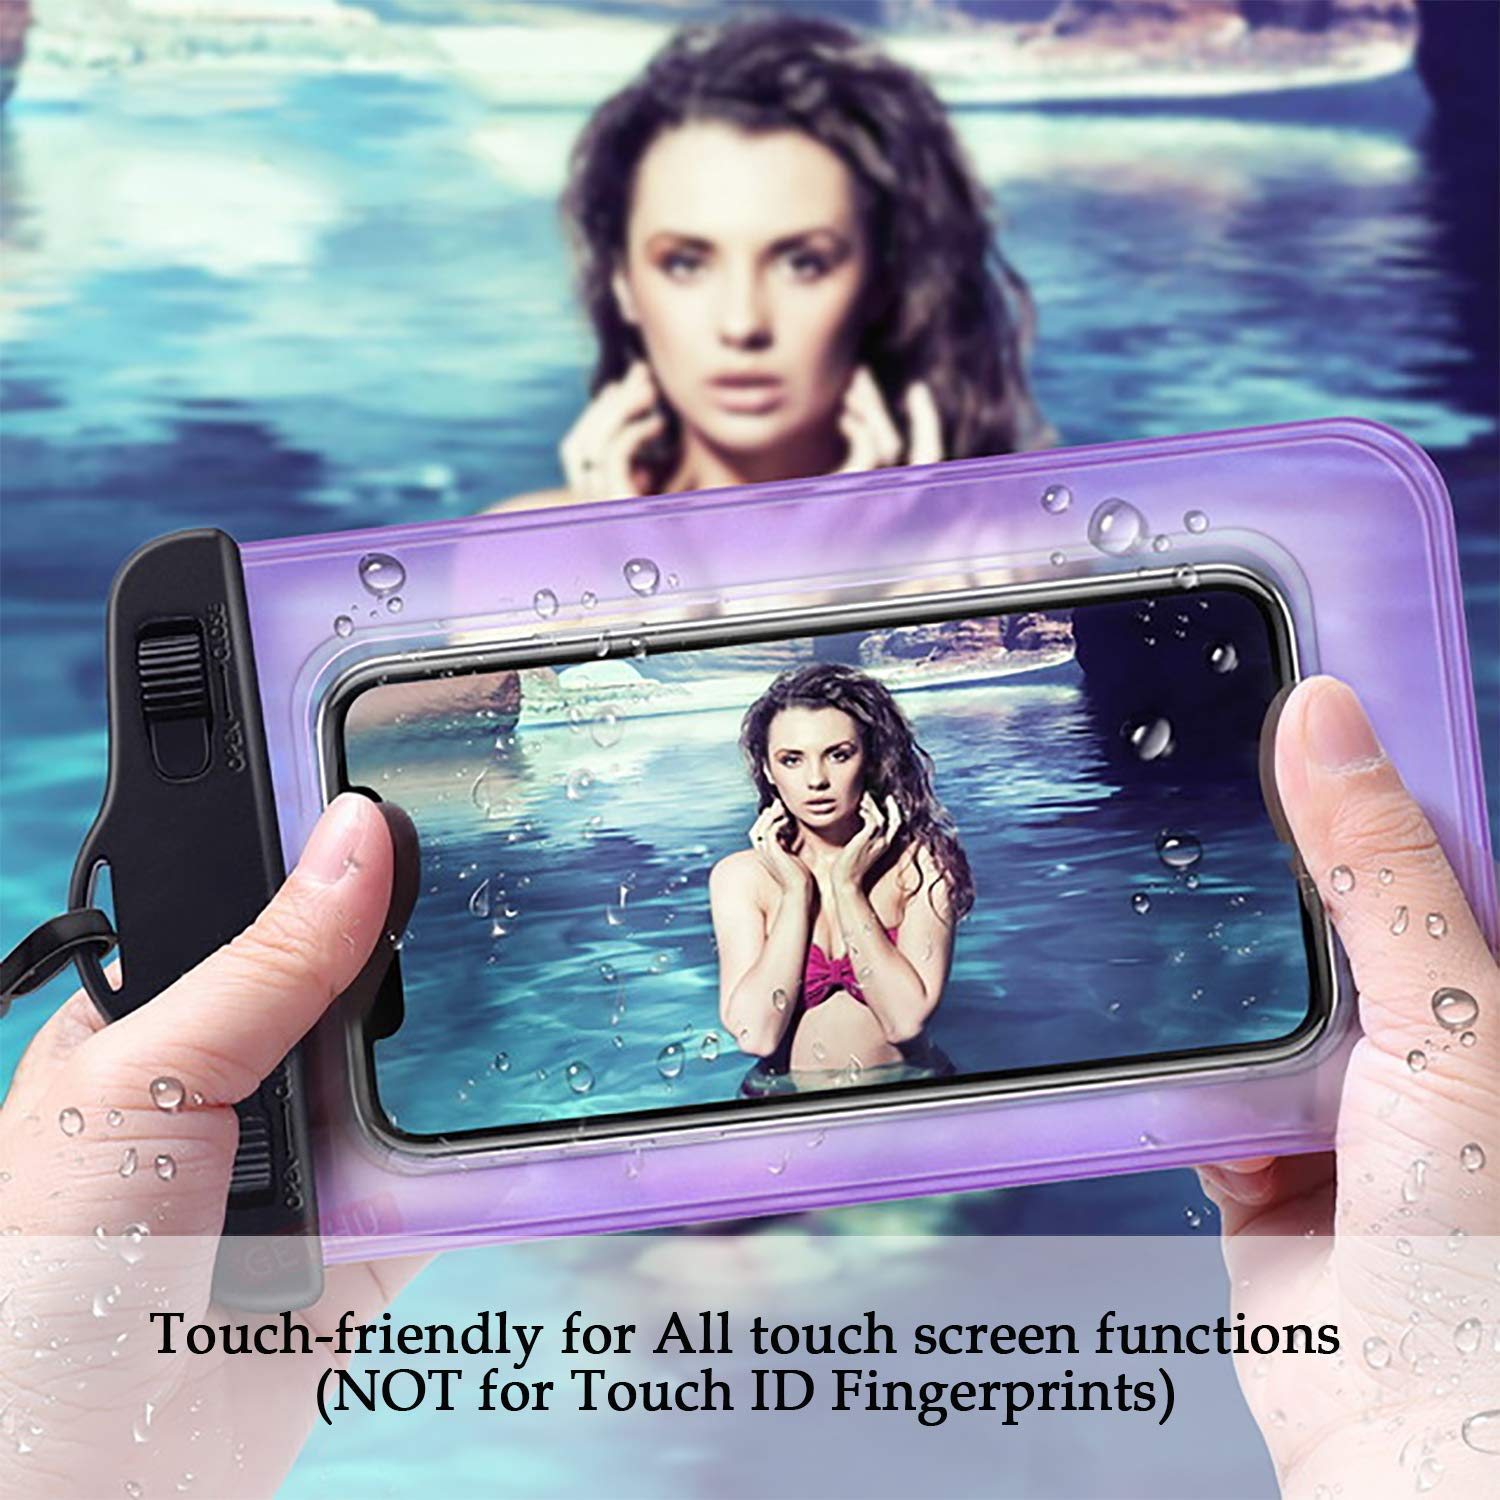 Universal Waterproof Case - Waterproof Phone Pouch - Cellphone Dry Bag for iPhone X/8/ 8plus/7/7plus/6s/6/6s Plus Samsung Galaxy s8/s7 Google Pixel 2 HTC LG Sony up to 6.5\